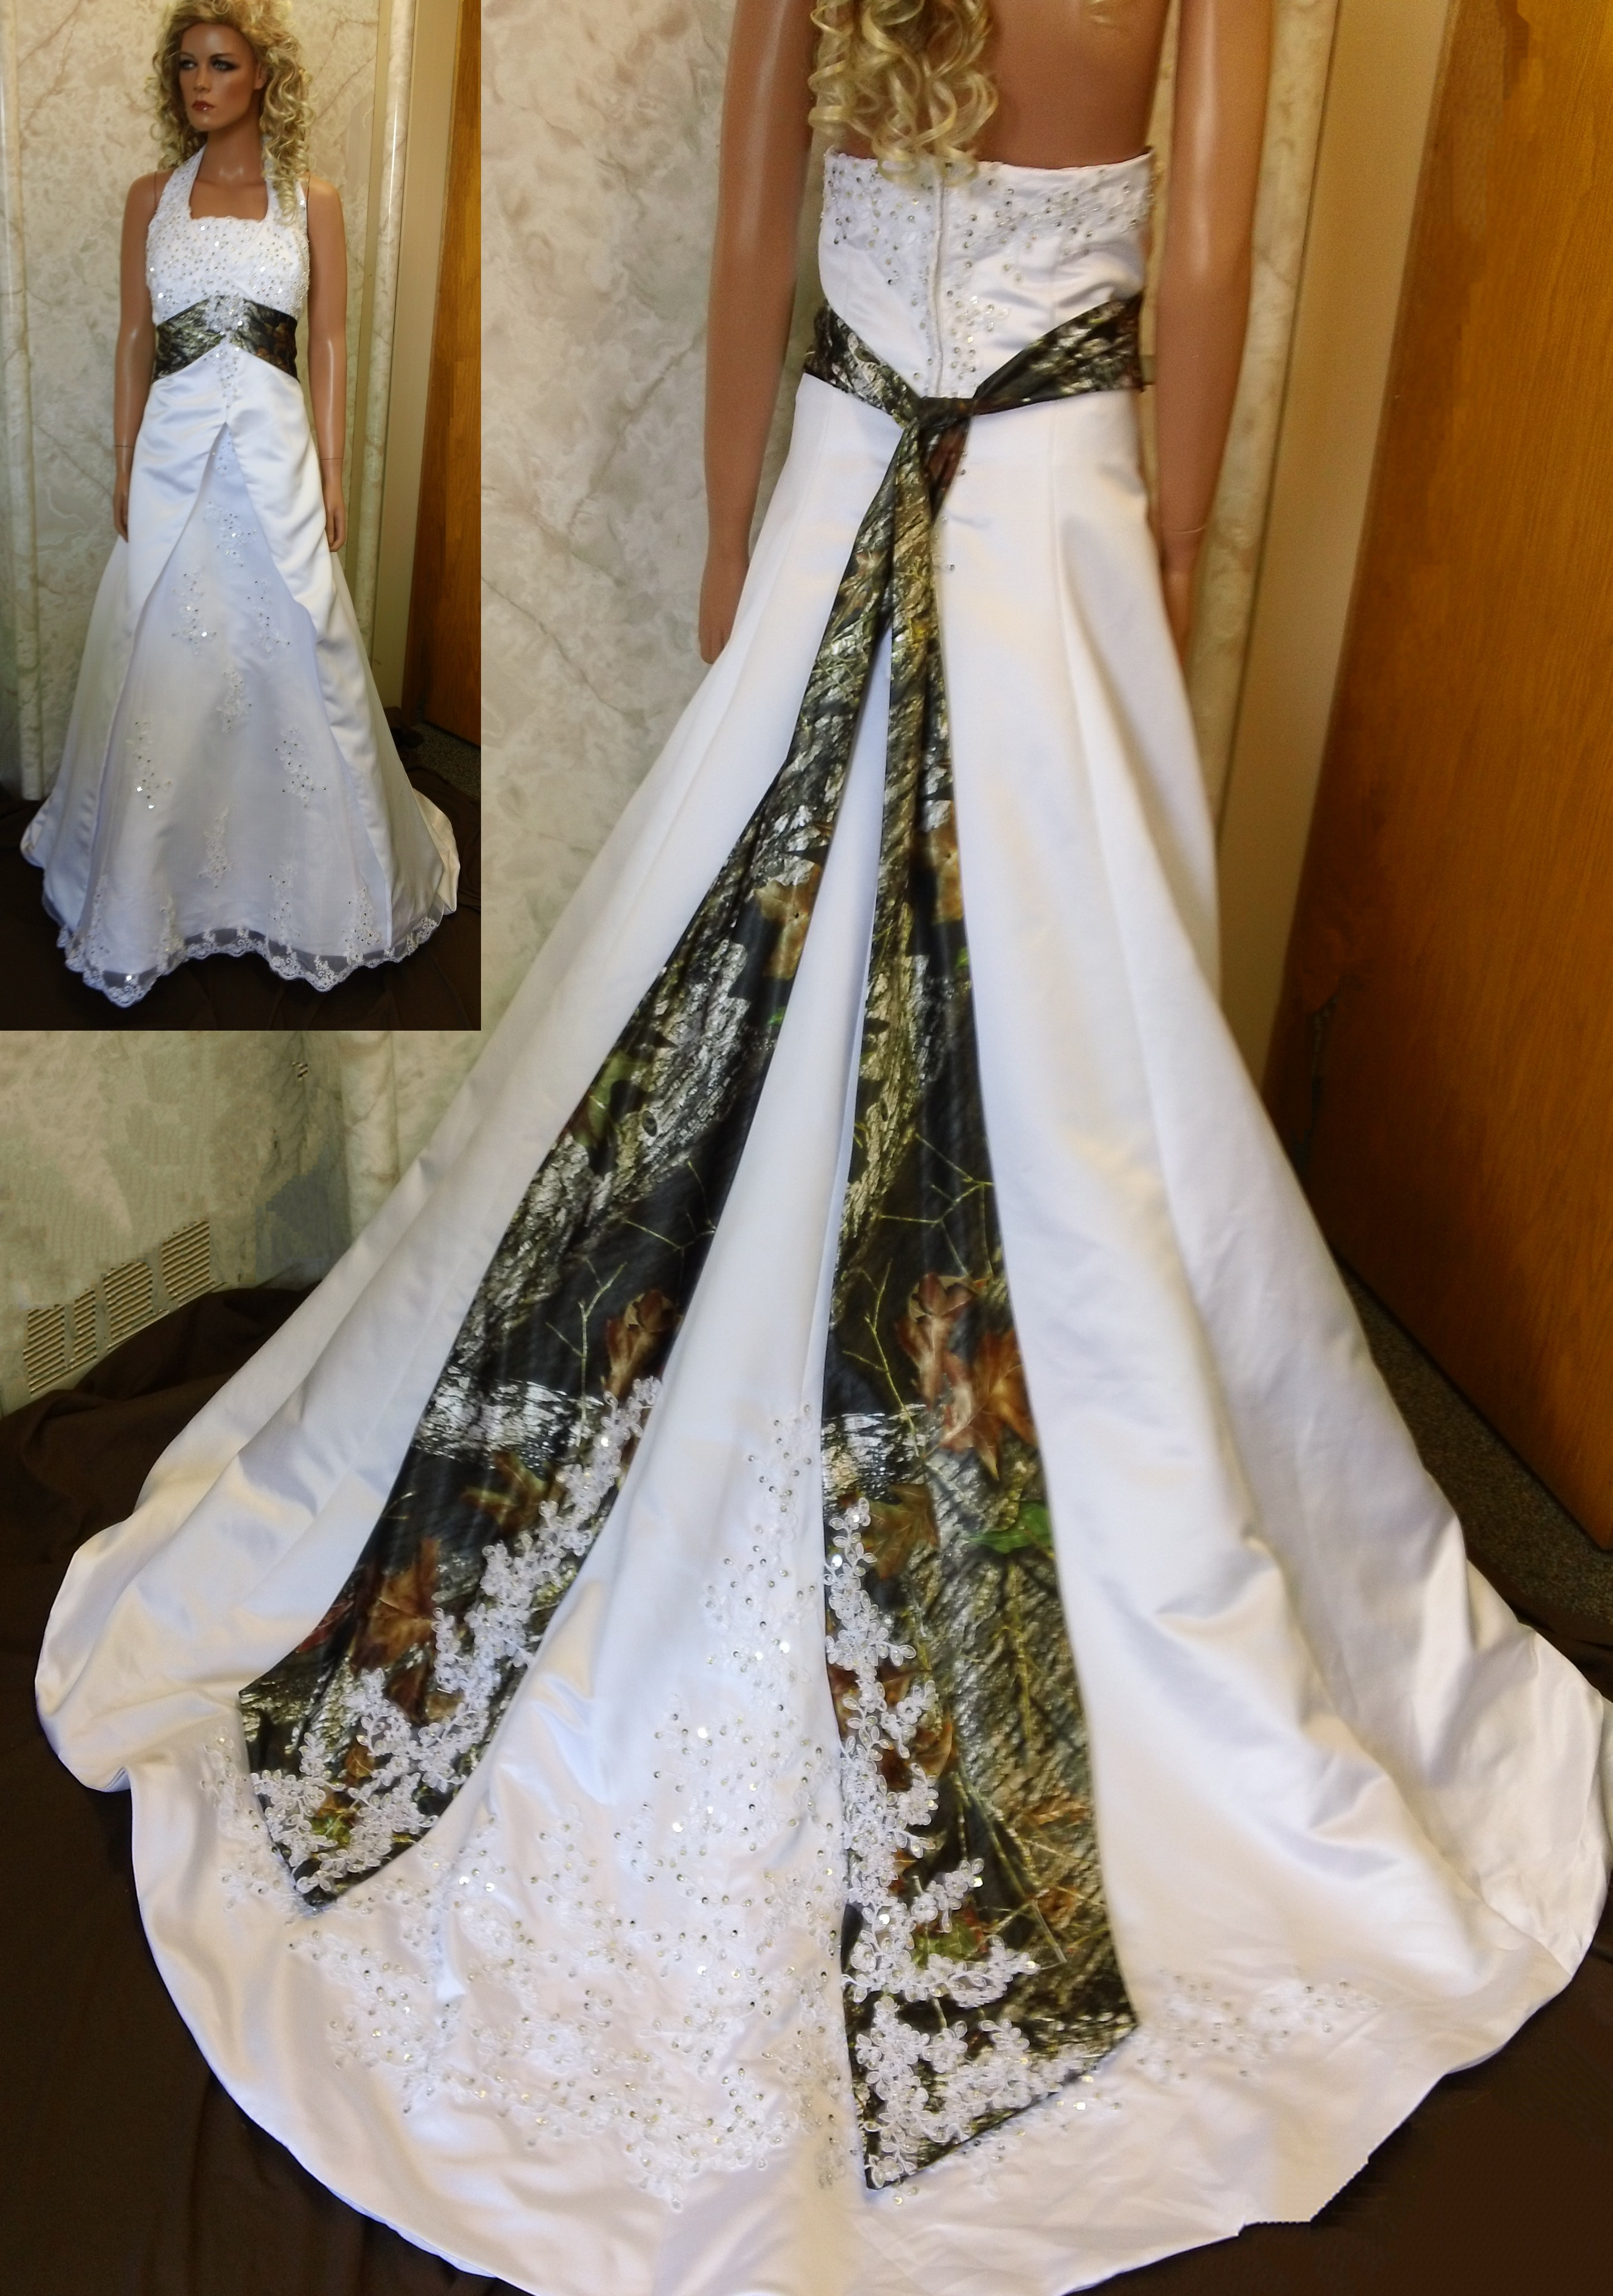 Aimee 74 wedding gown wedding dresses camo white and camouflage wedding dresses